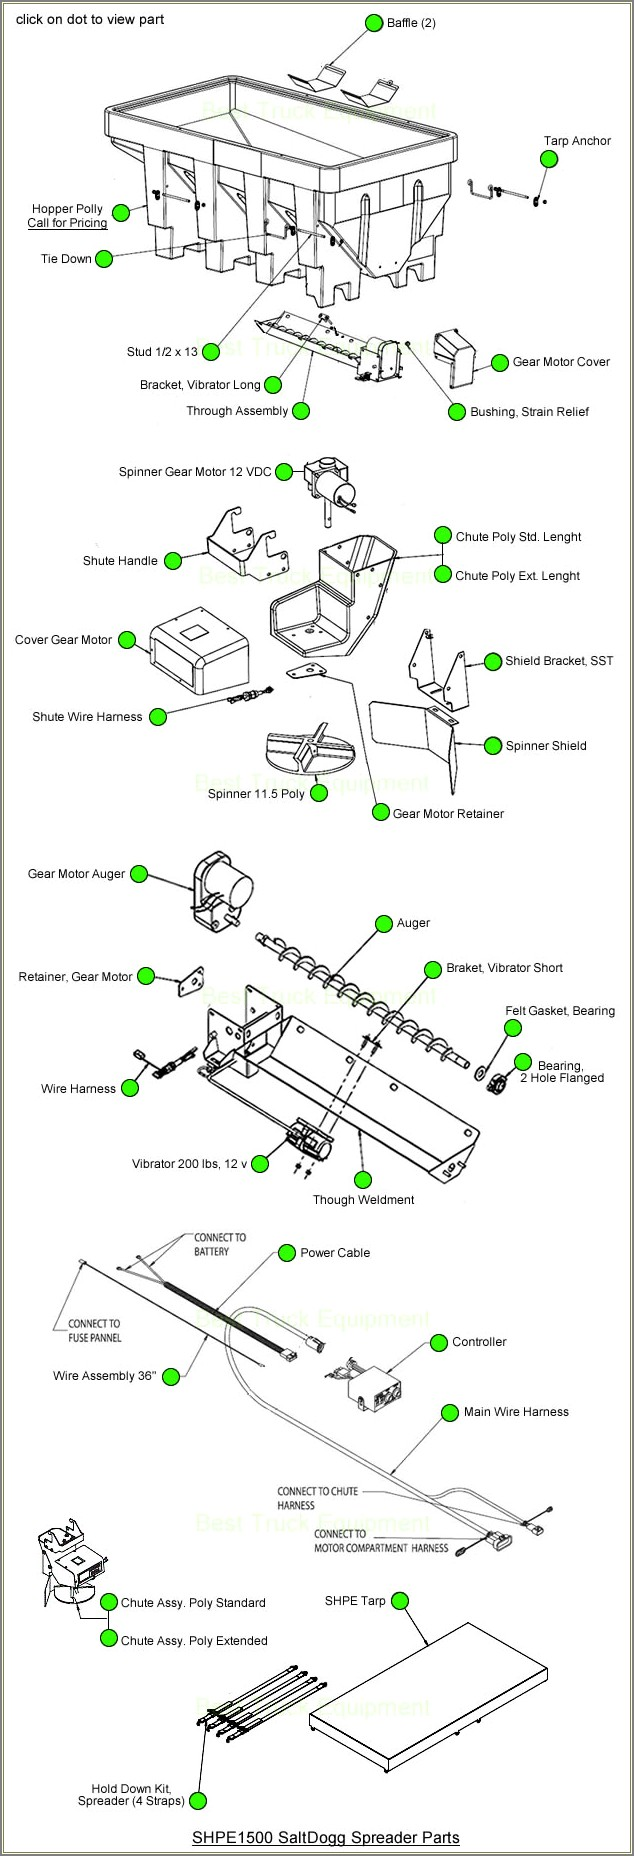 Salt Dogg Spreader Controller Wiring Diagram